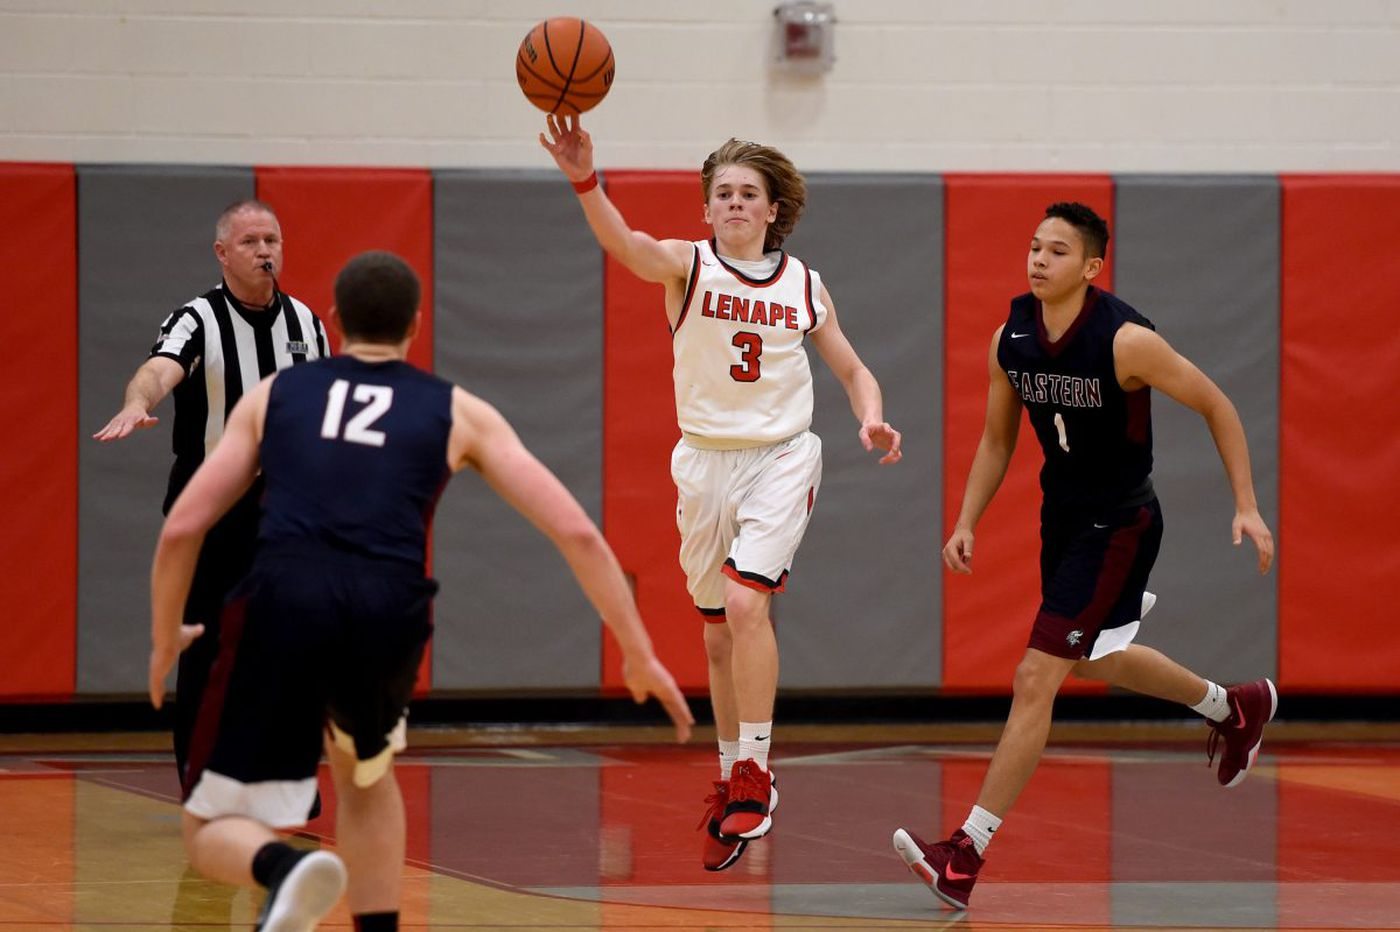 Tuesday's S.J. roundup: Camden's Corey Greer tops 1,000 career points in overtime win against Camden Catholic